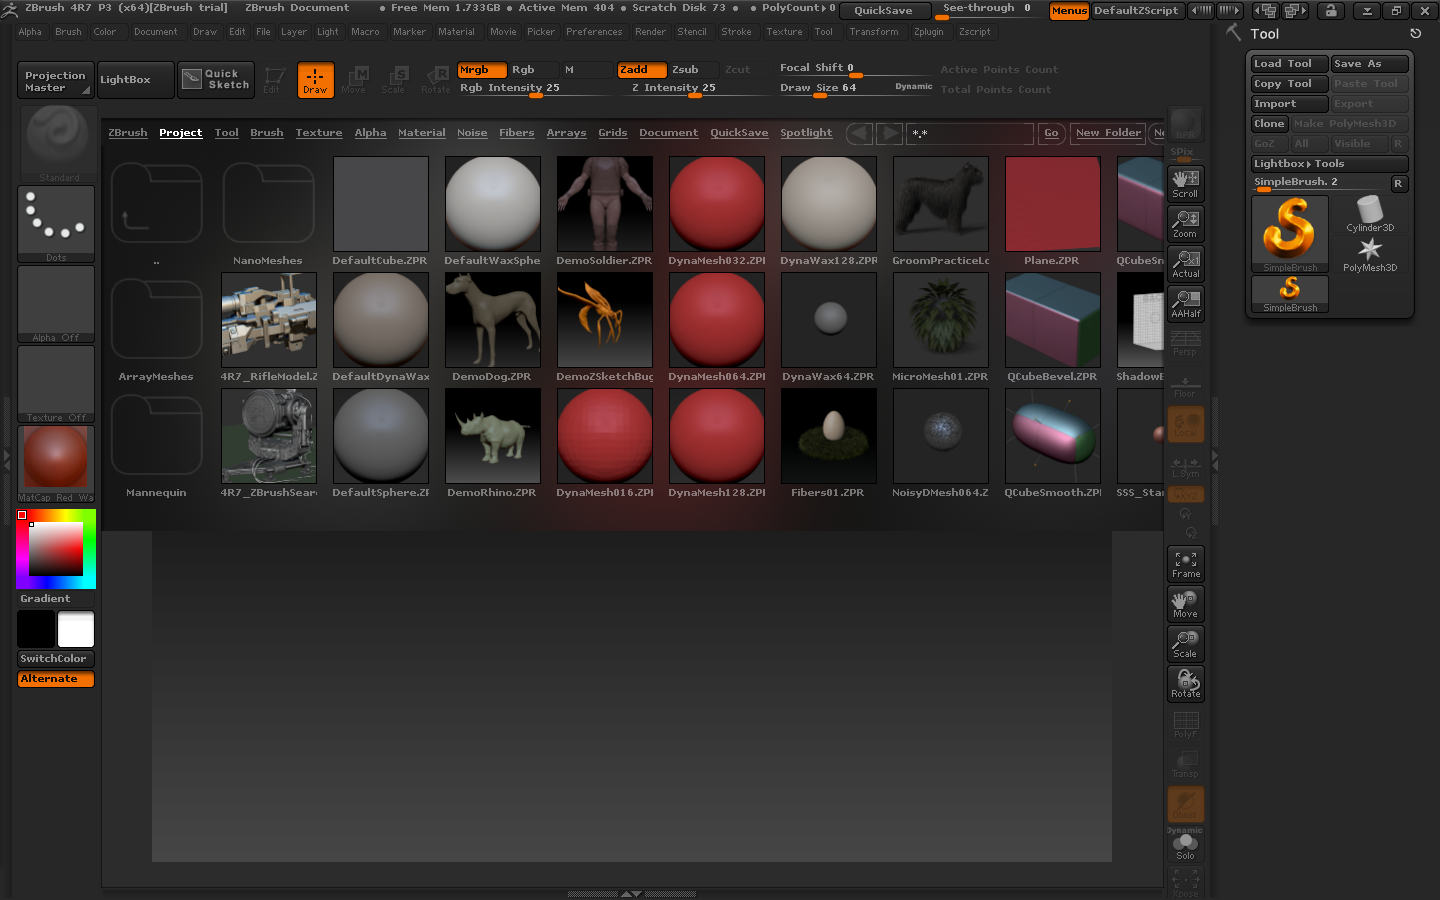 ZBrush 4R7 for mac截图3